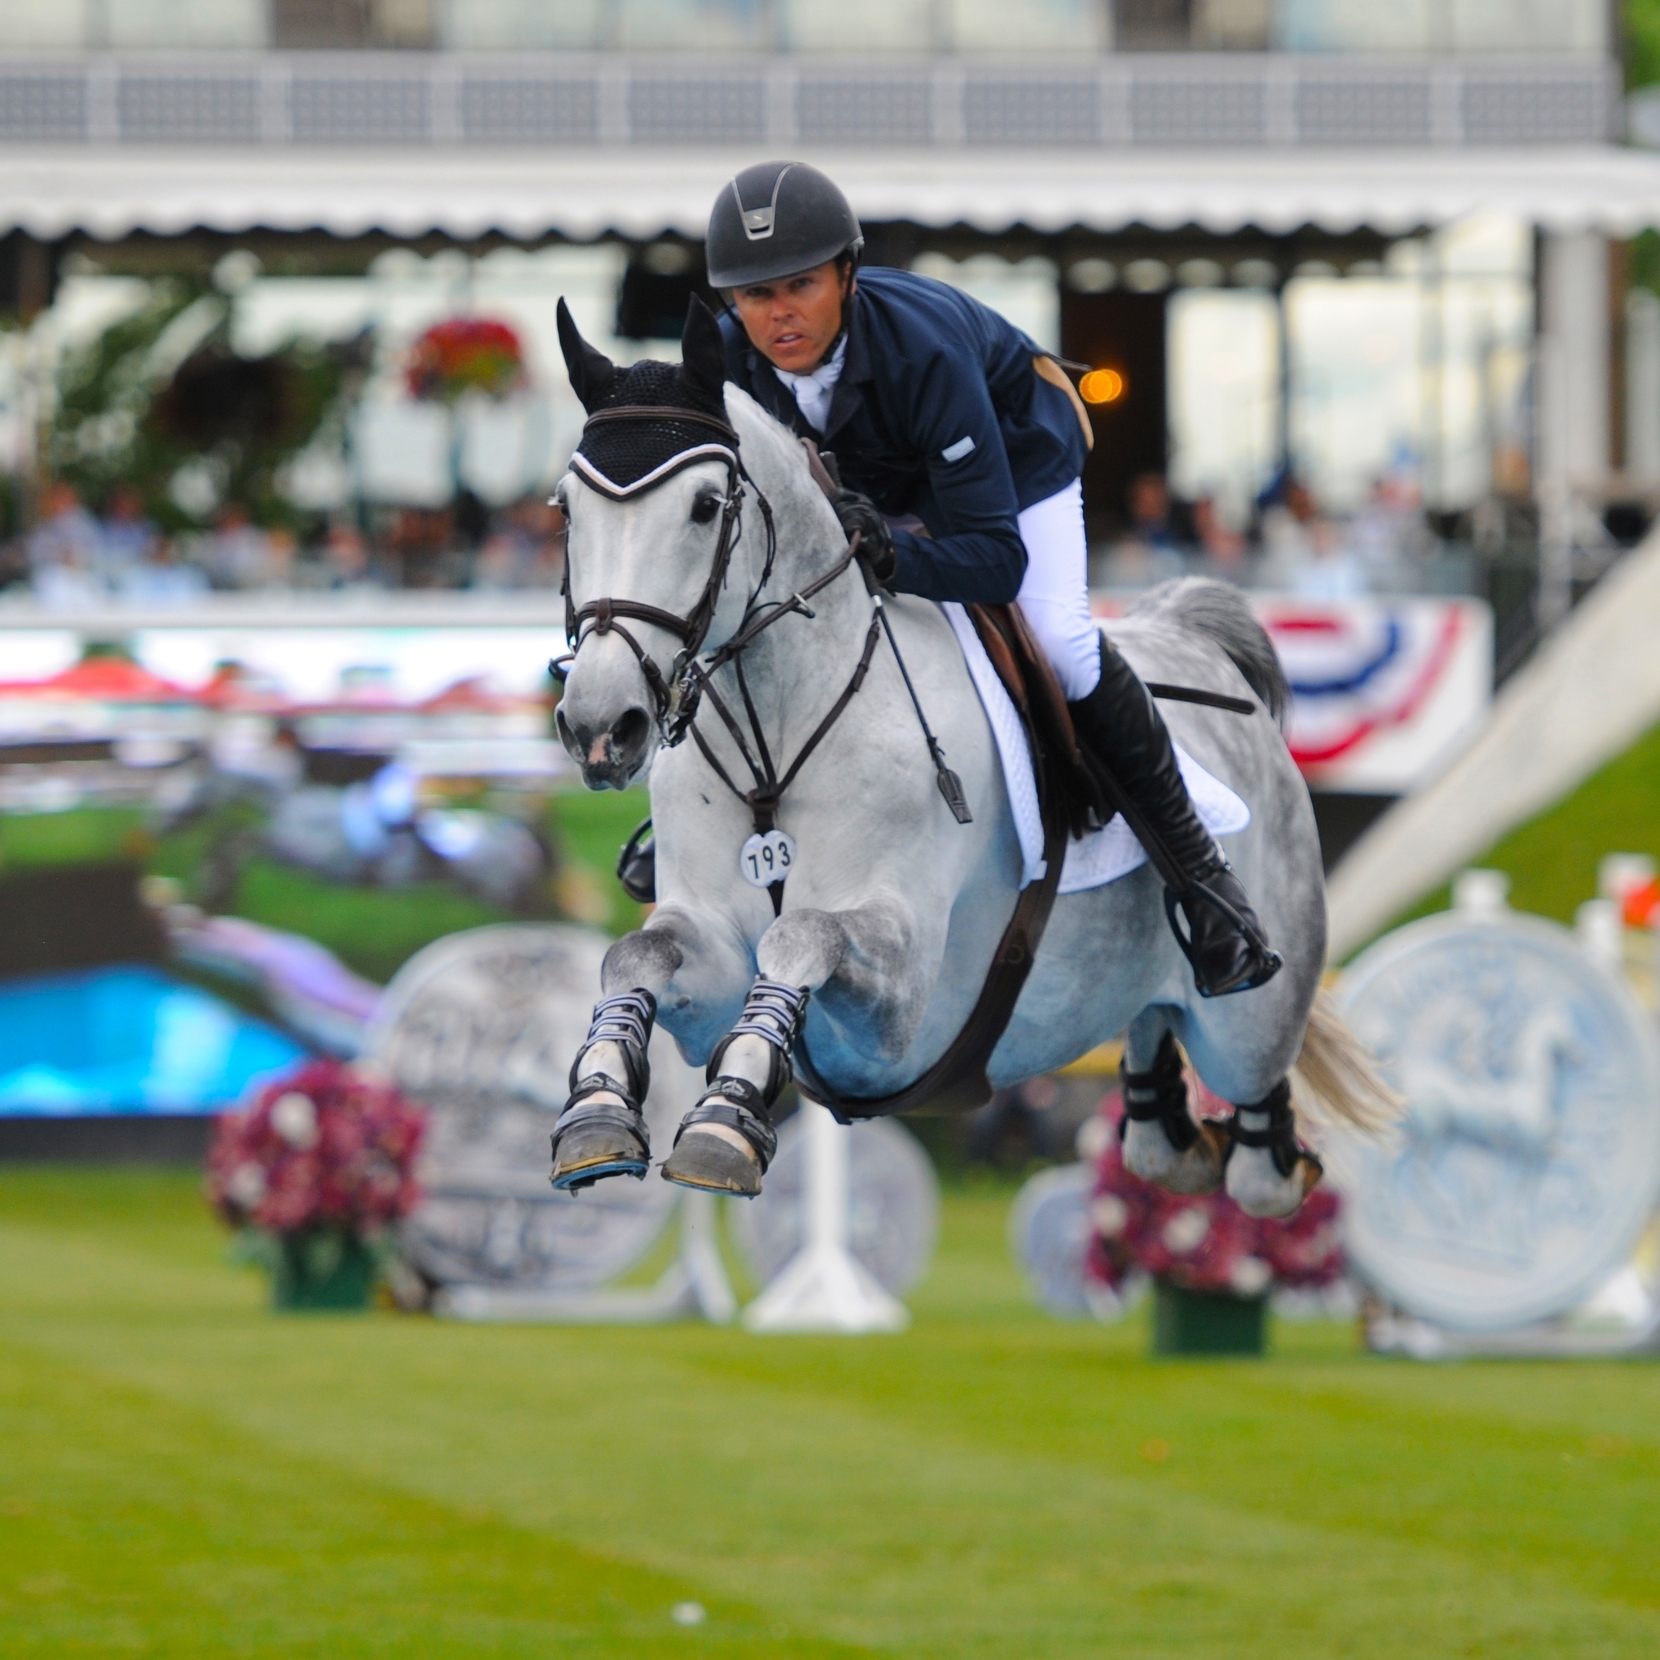 KENT FARRINGTON WINS $400,000 CN RELIABLITY GRAND PRIX FOR SECOND YEAR IN A ROW  The biggest prize money purse on offer at the 'National' Tournament was in today's $400,000 CN Reliability Grand Prix, CSI-W 5*, and it was Kent Farrington (USA) who took home the winner's share for the second year in a row with Uceko.    READ MORE